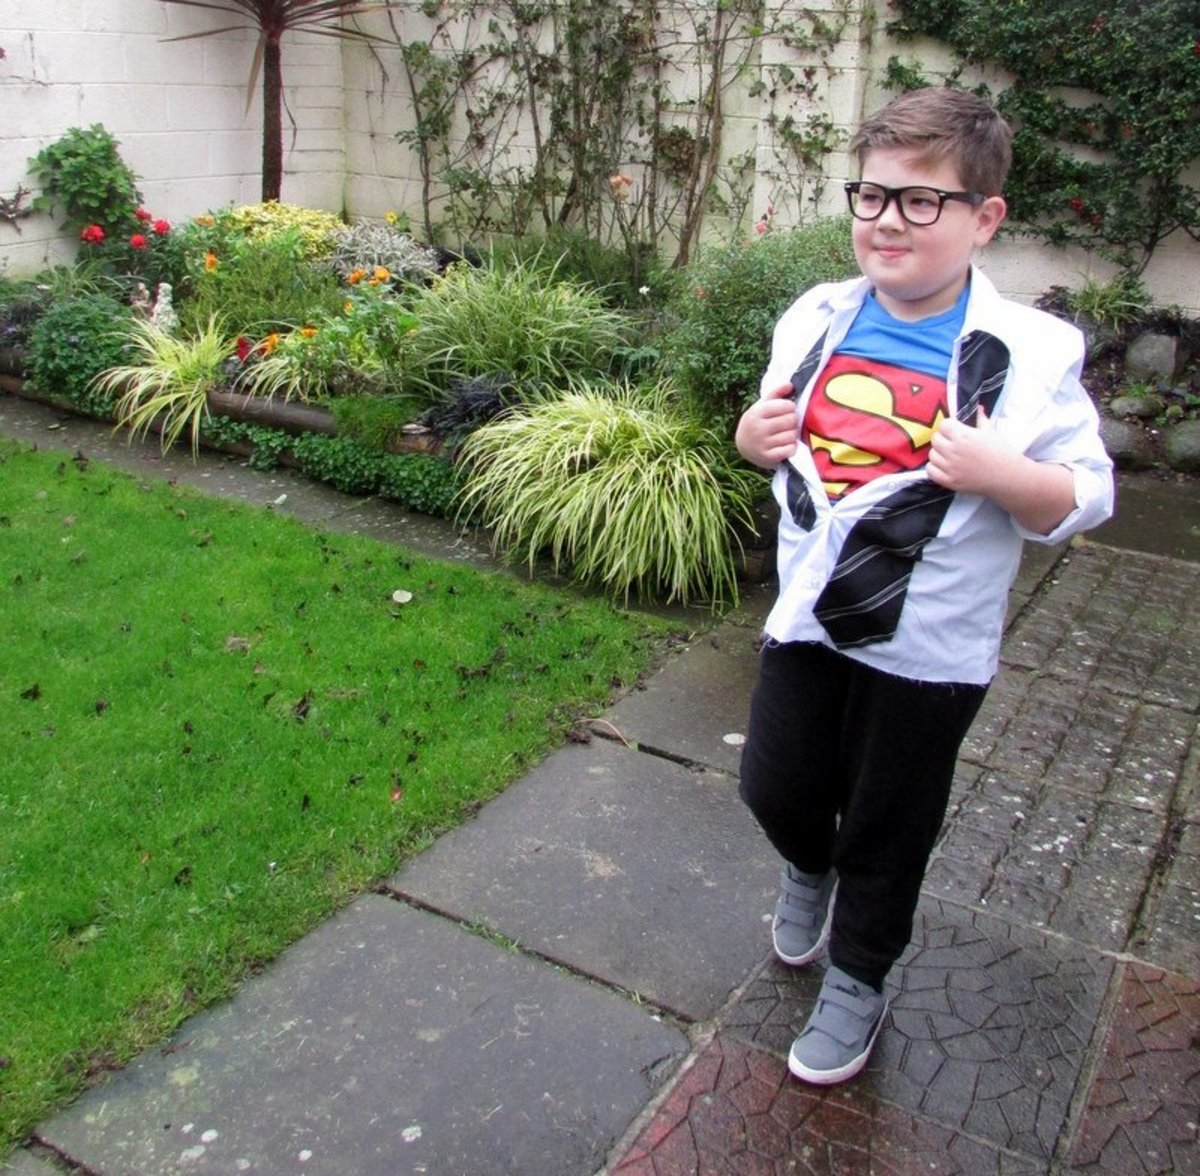 Learn how to make this Superman/Clark Kent Halloween Costume from scratch at home.